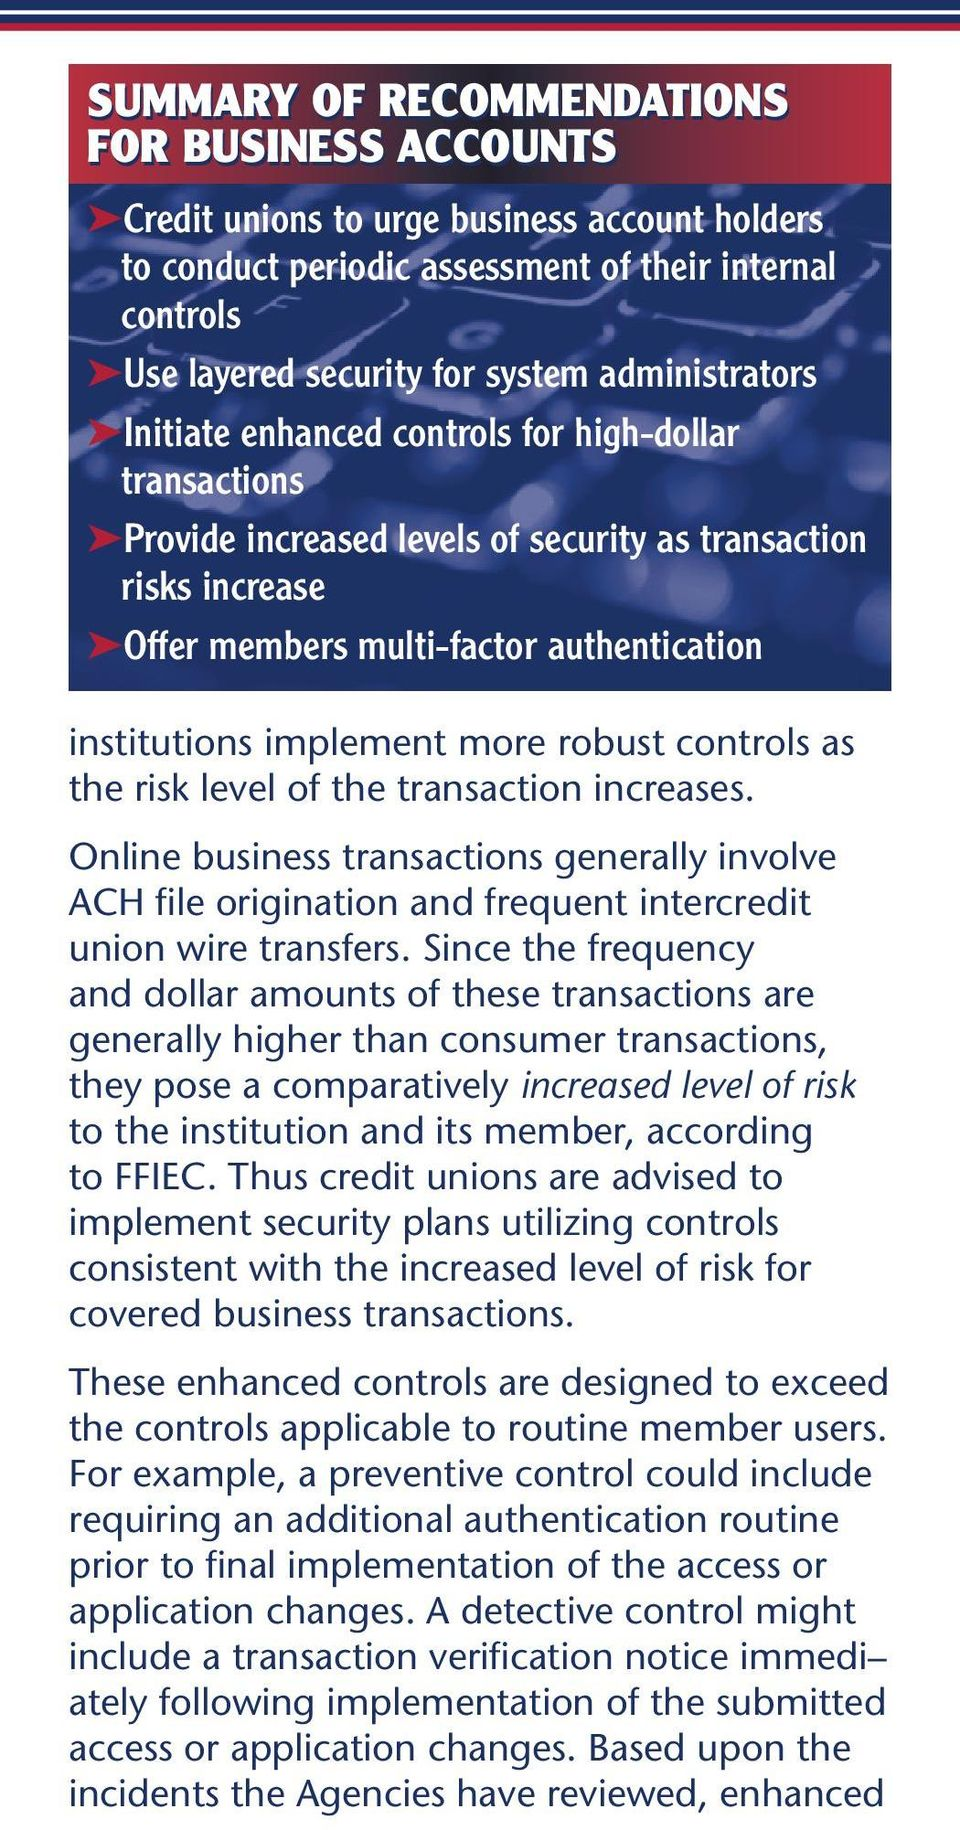 implement more robust controls as the risk level of the transaction increases. Online business transactions generally involve ACH file origination and frequent intercredit union wire transfers.